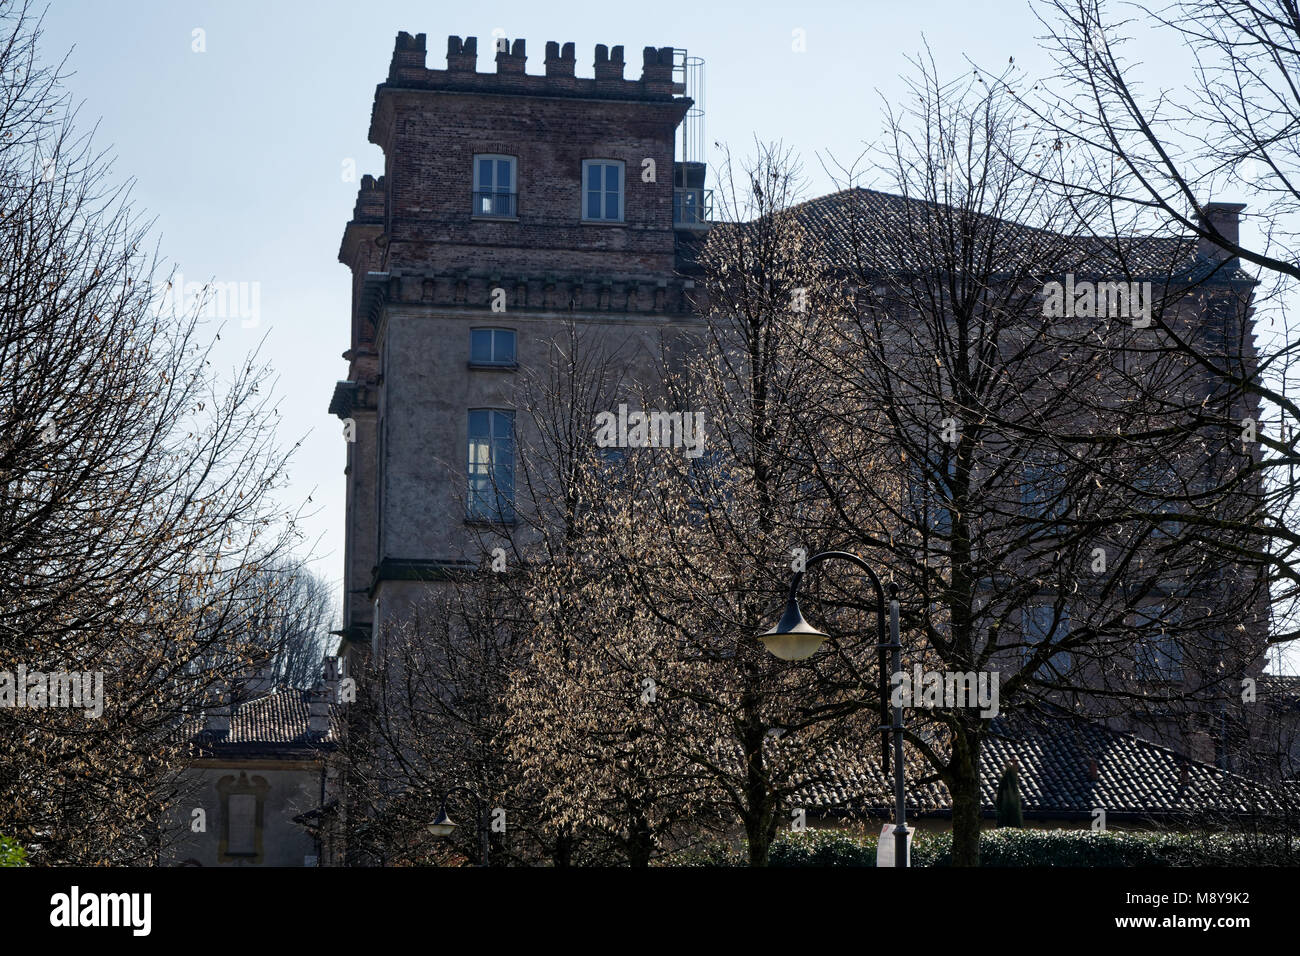 Library, Robecco sul Naviglio, Milan province, Italy, 13 March 2018: Old library in Italy, like castle. - Stock Image